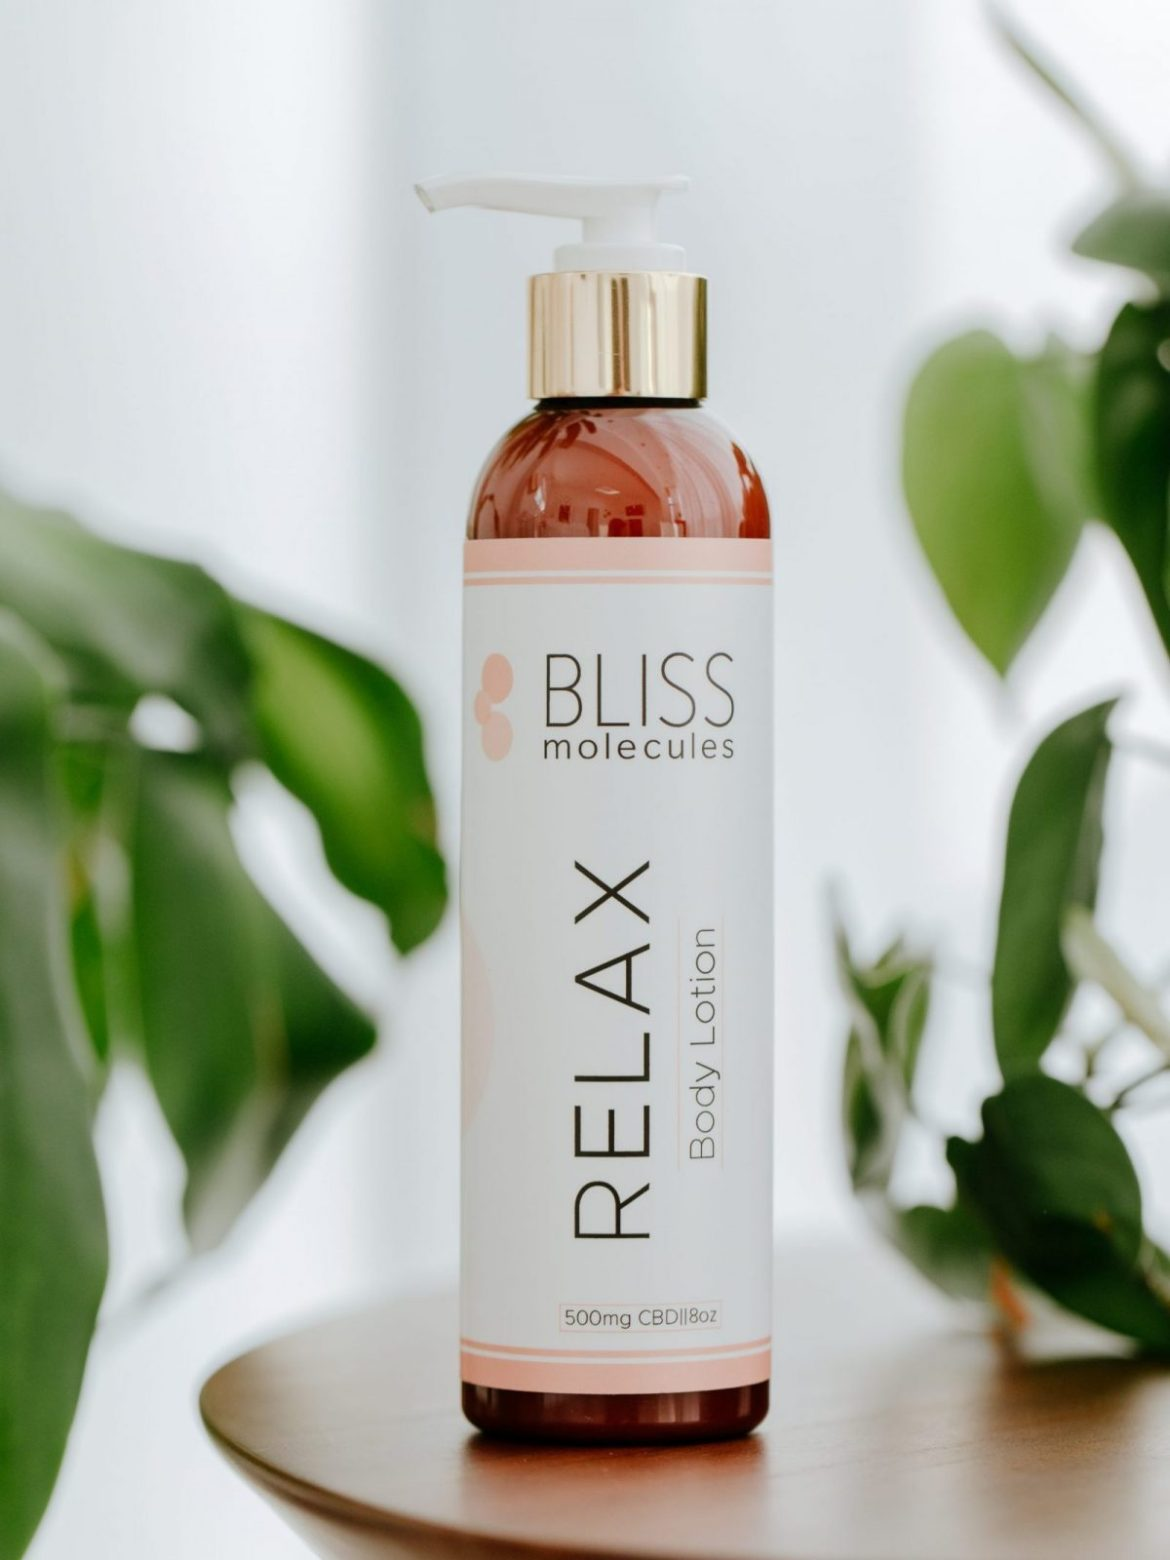 Relax Hemp Extract Body Lotion from Bliss Molecules